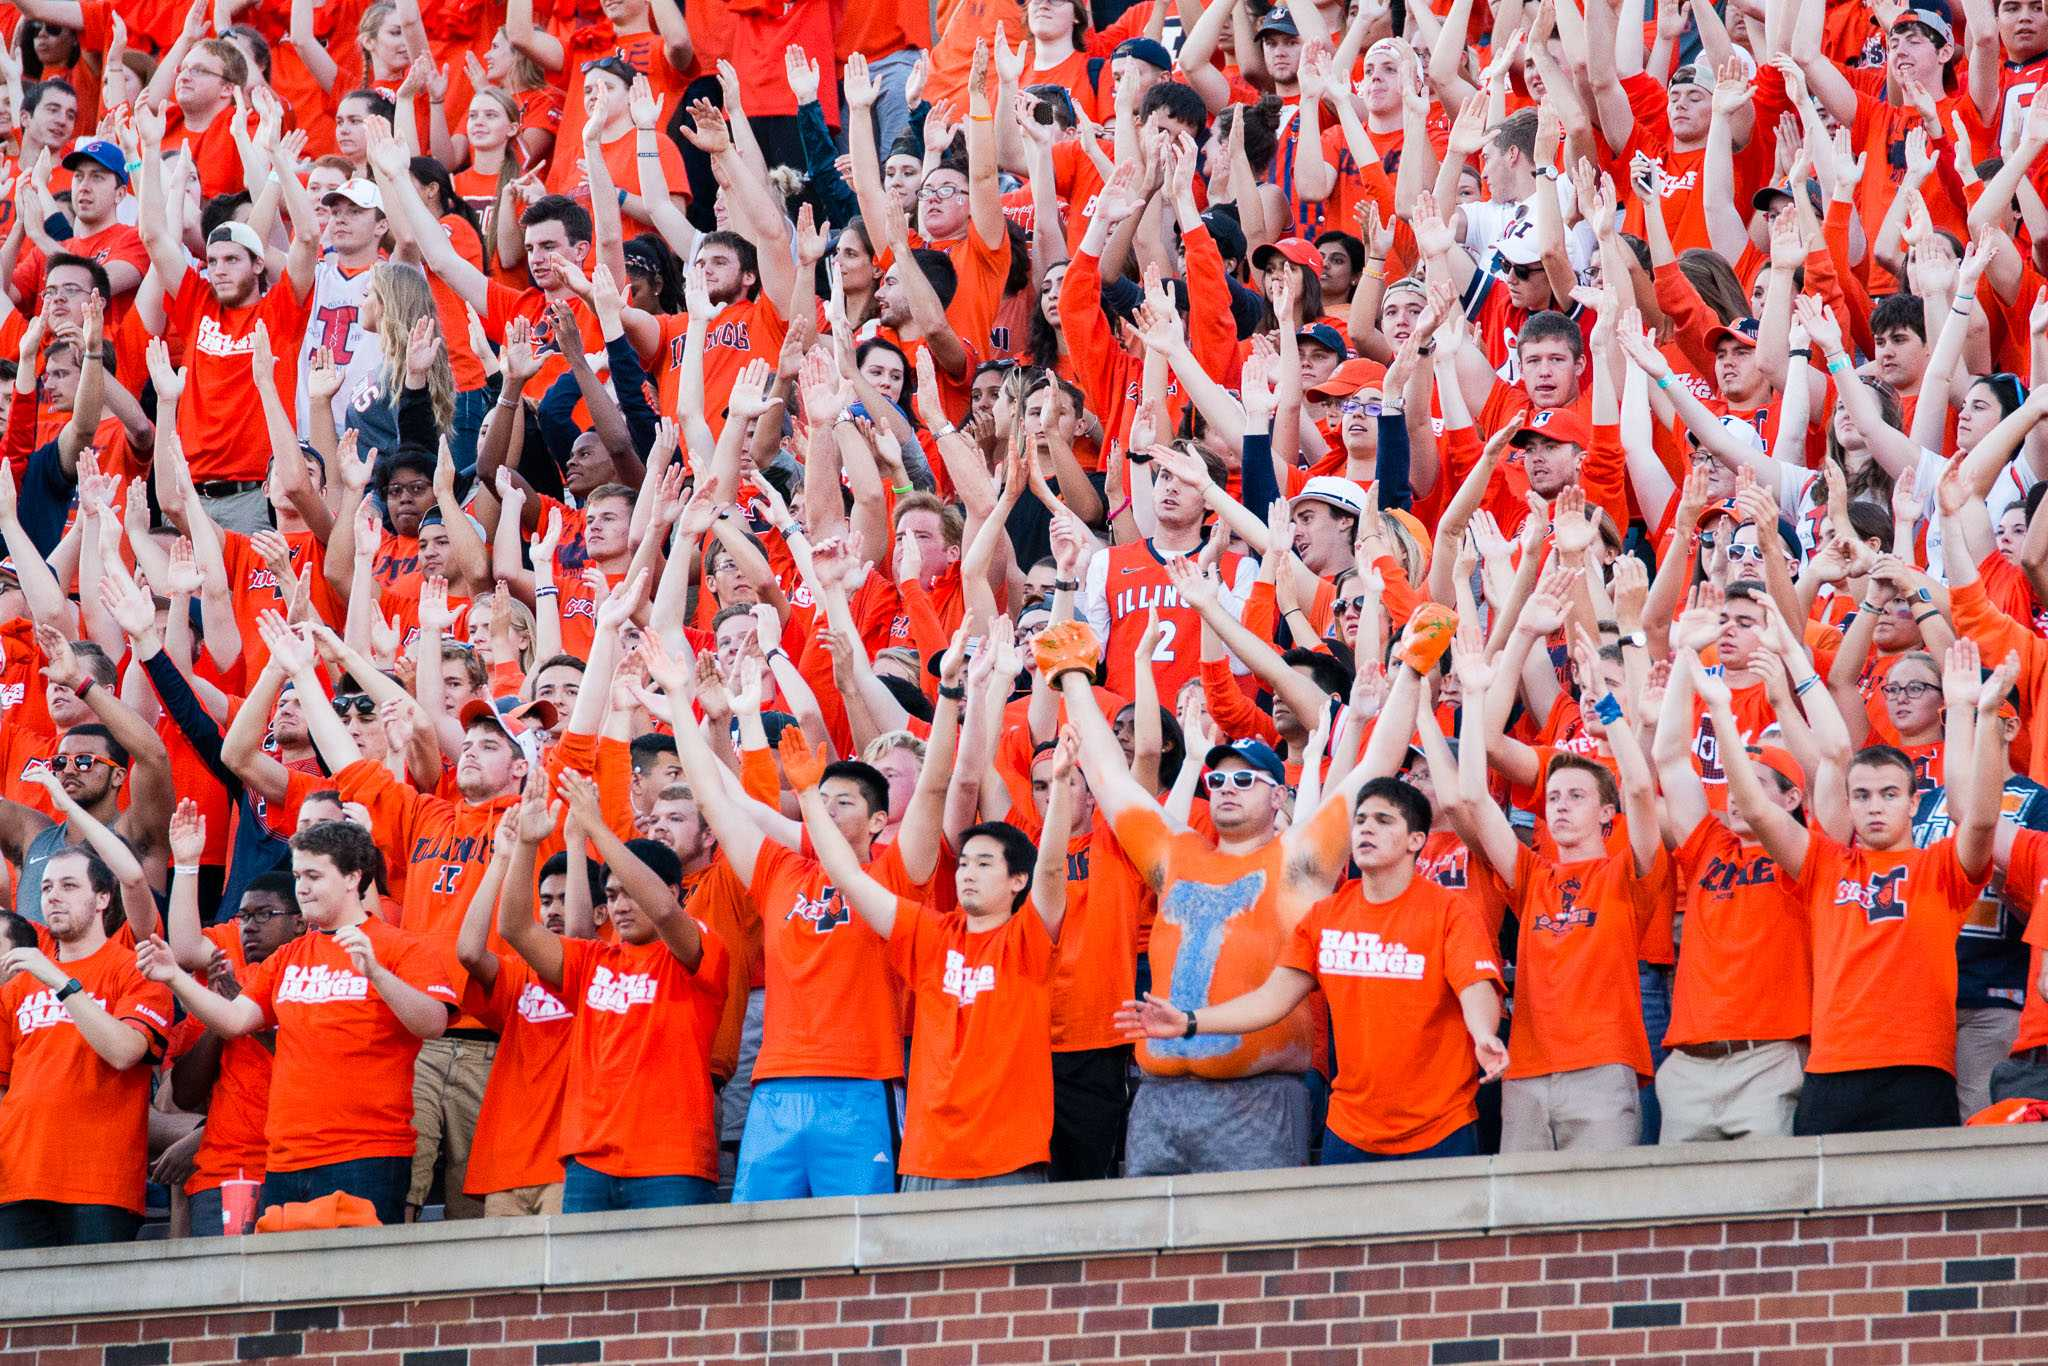 Students in the Block I student section cheer on the Illini during the game against North Carolina at Memorial Stadium on Saturday, September 10.